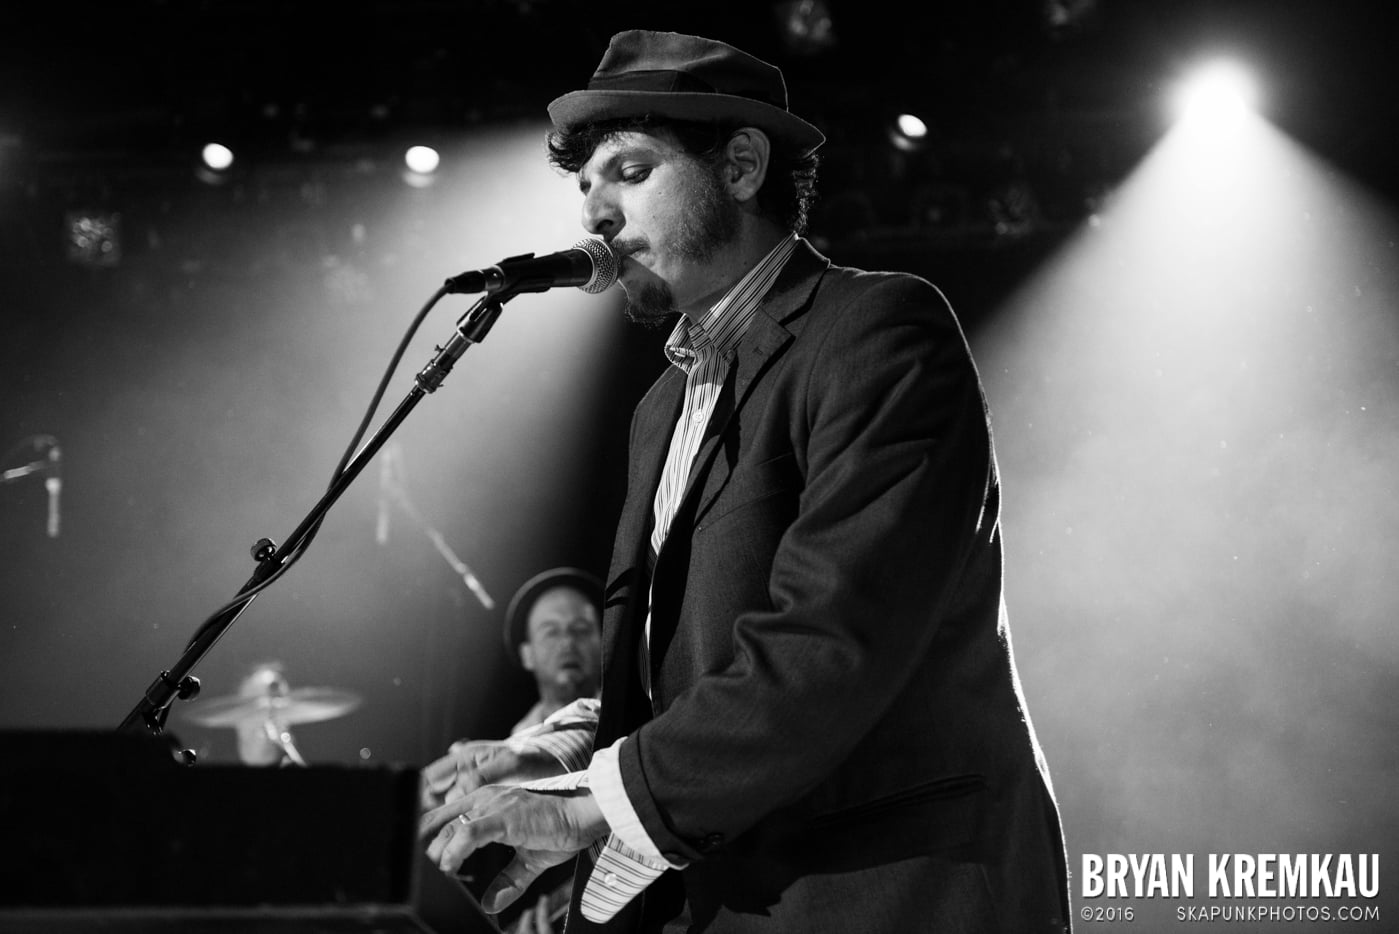 The Slackers @ Apple Stomp: Day 2, Irving Plaza, NYC - June 1st 2013 - Bryan Kremkau (27)